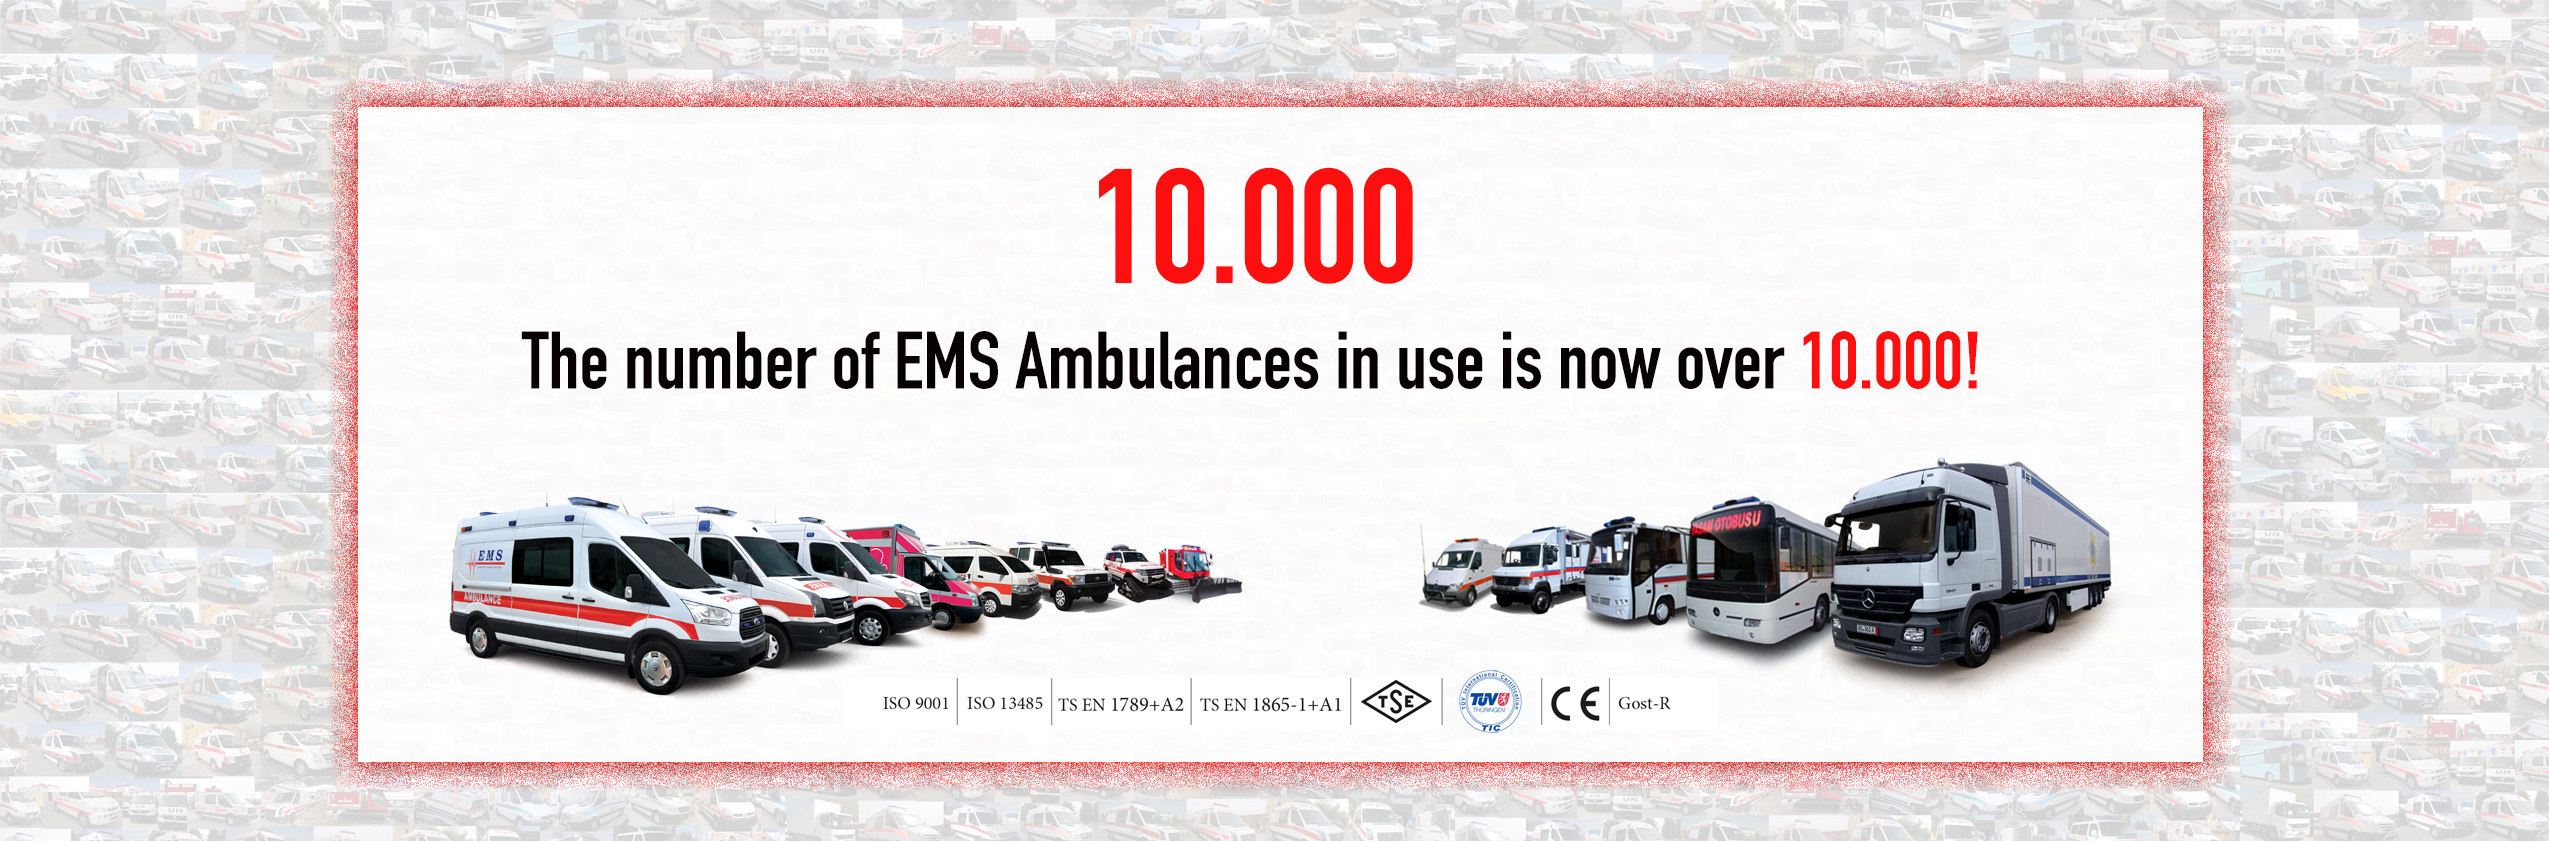 The number of EMS Ambulances in use is now over 10.000!